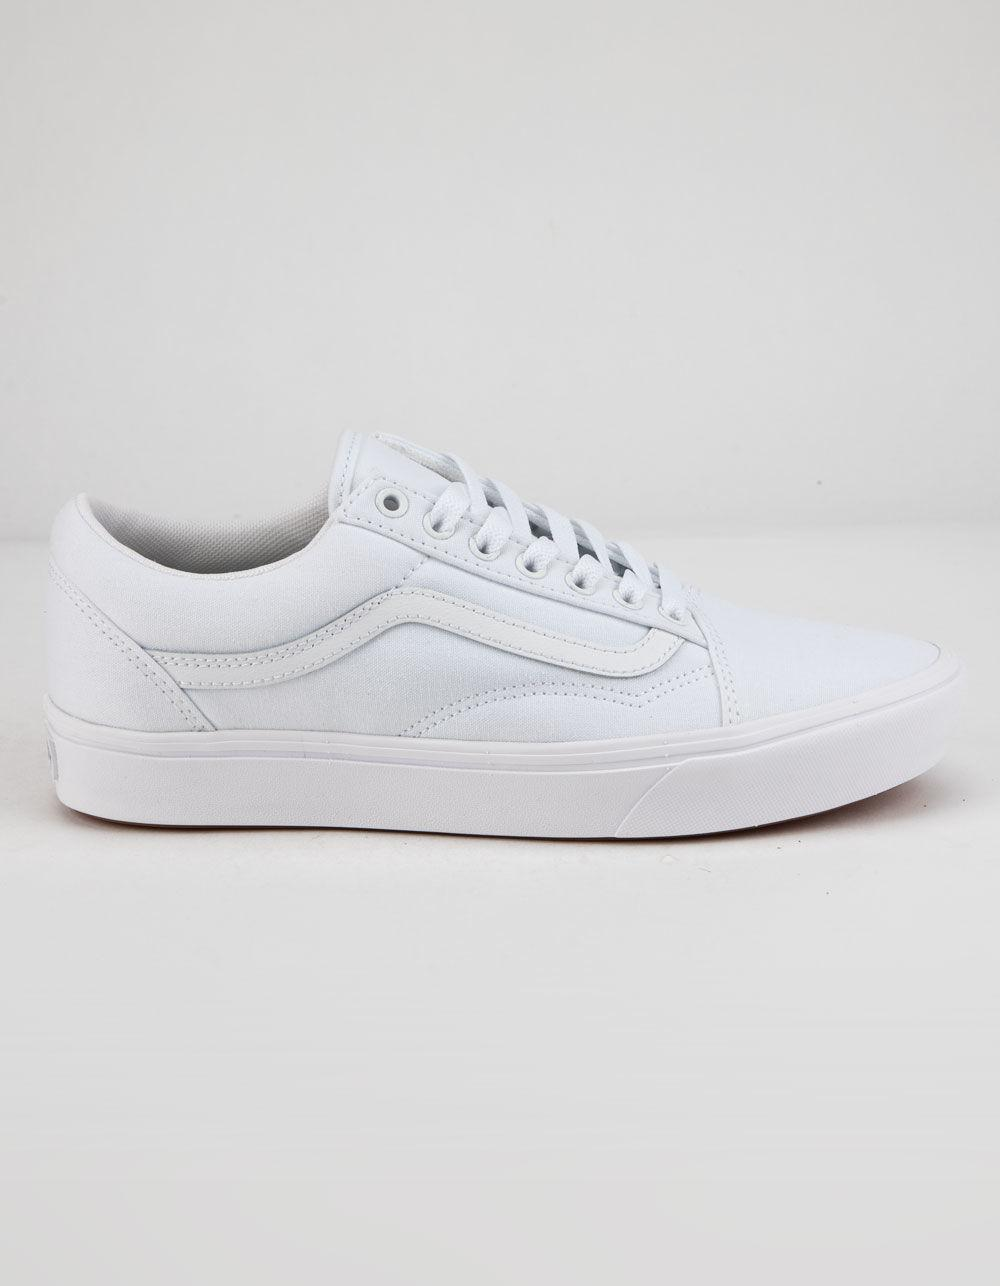 6eb401a941c Lyst - Vans Comfycush Old Skool True White Shoes in White